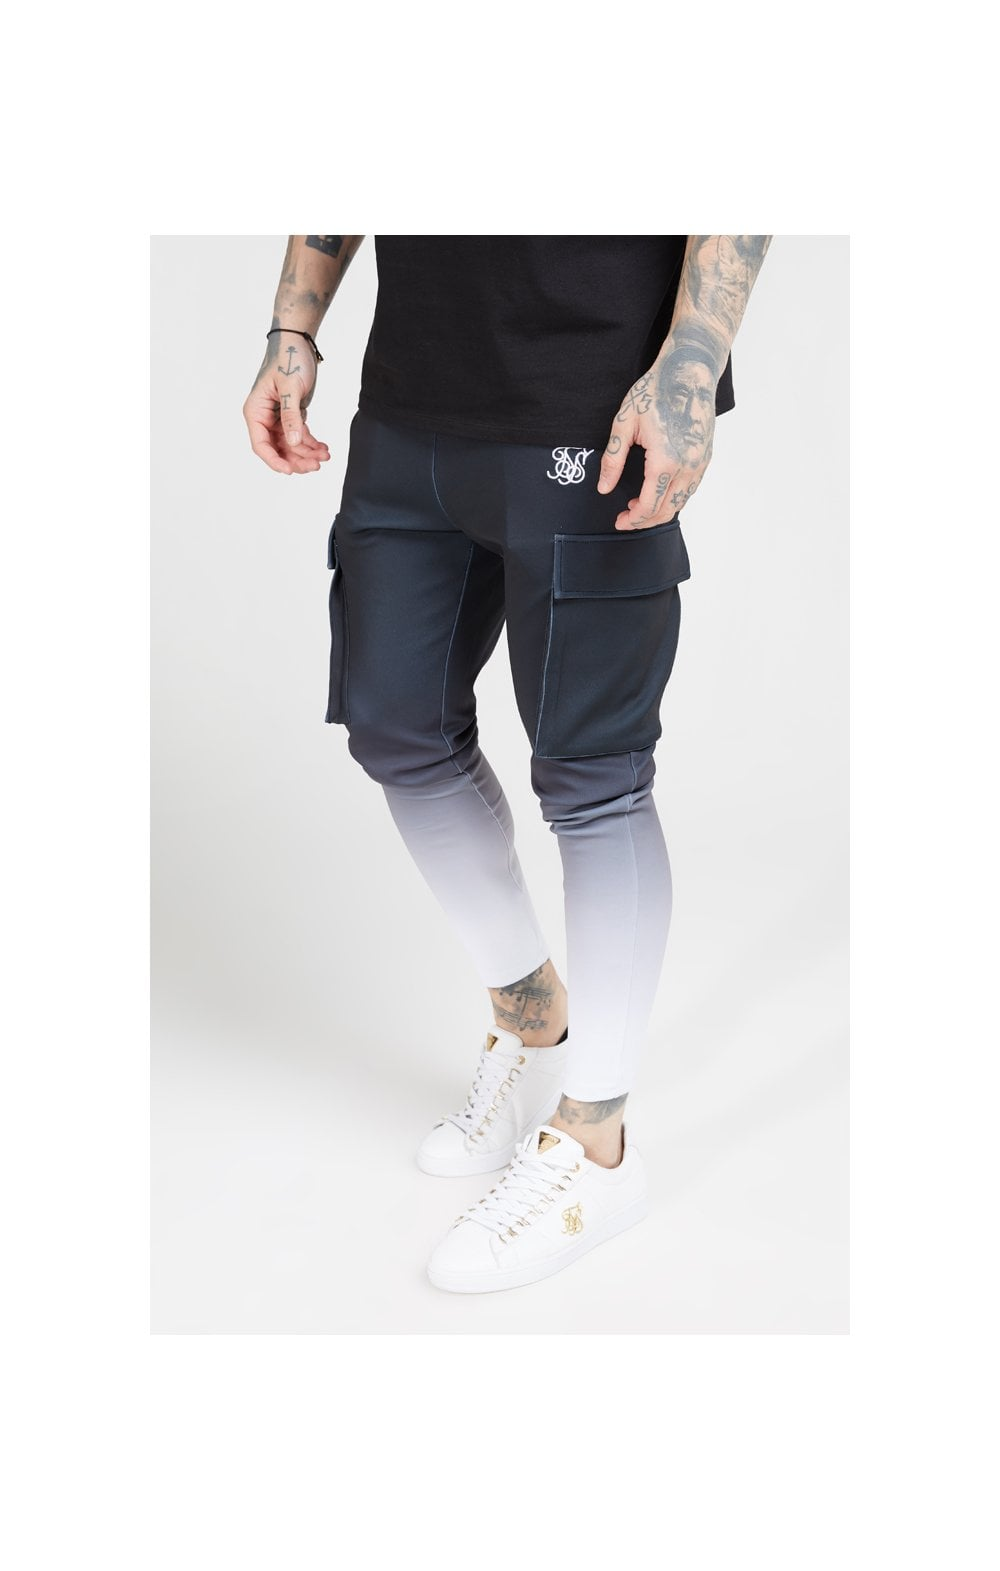 Load image into Gallery viewer, SikSilk Poly Athlete Cargo Pants - Black & White